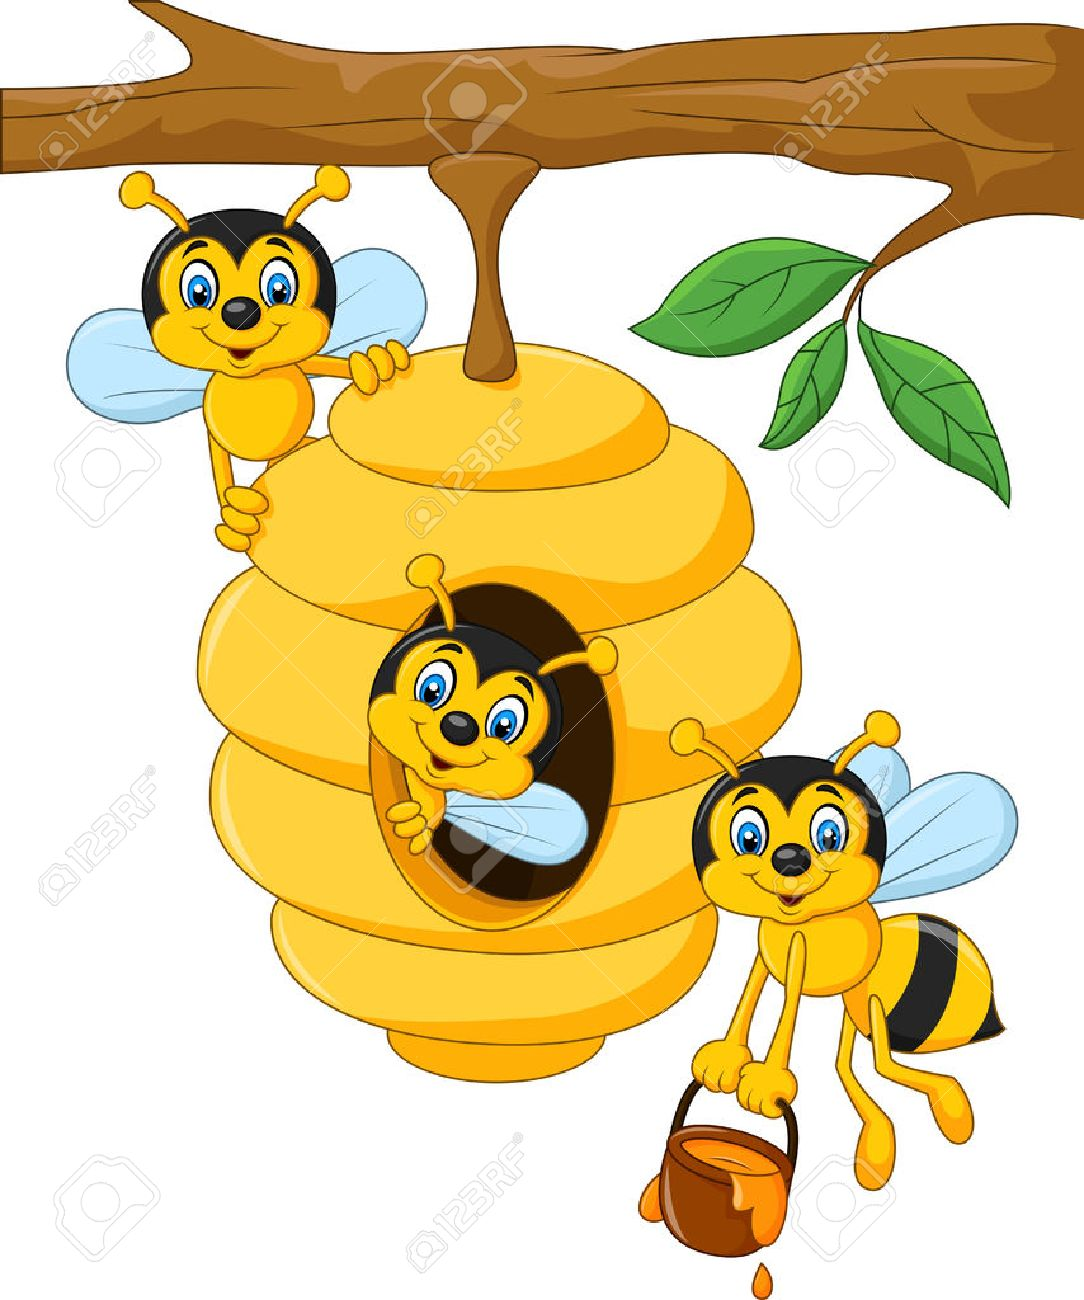 1084x1300 Vector Illustration Of Cartoon Branch Of A Tree With A Beehive